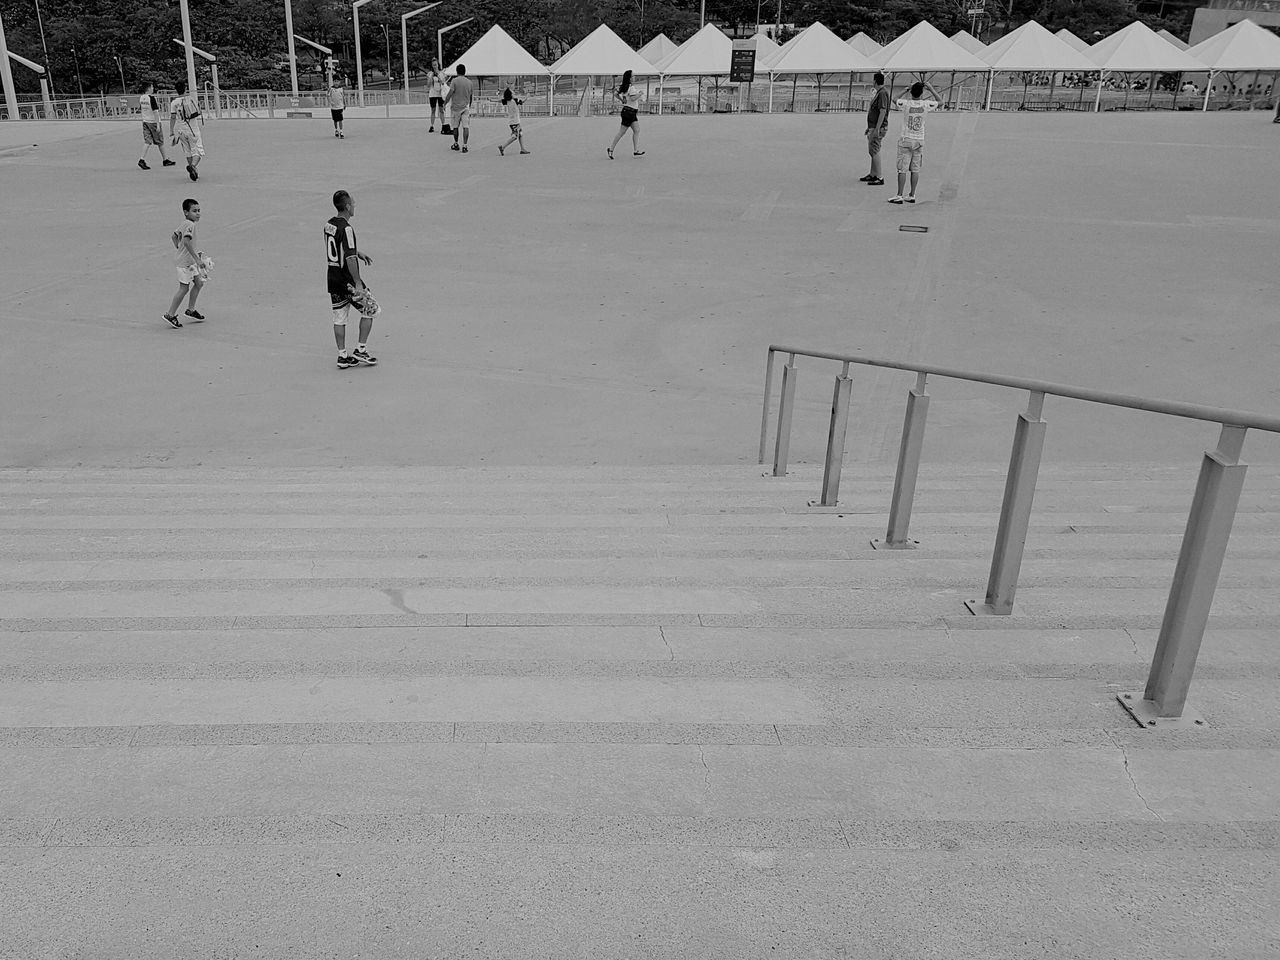 Sport Stadium Stairs People Leading Lines Architecture Streetphotography Rio2016 Olympics Blackandwhite Walking Around People Walking  Mineirão Esplanada Mineirão